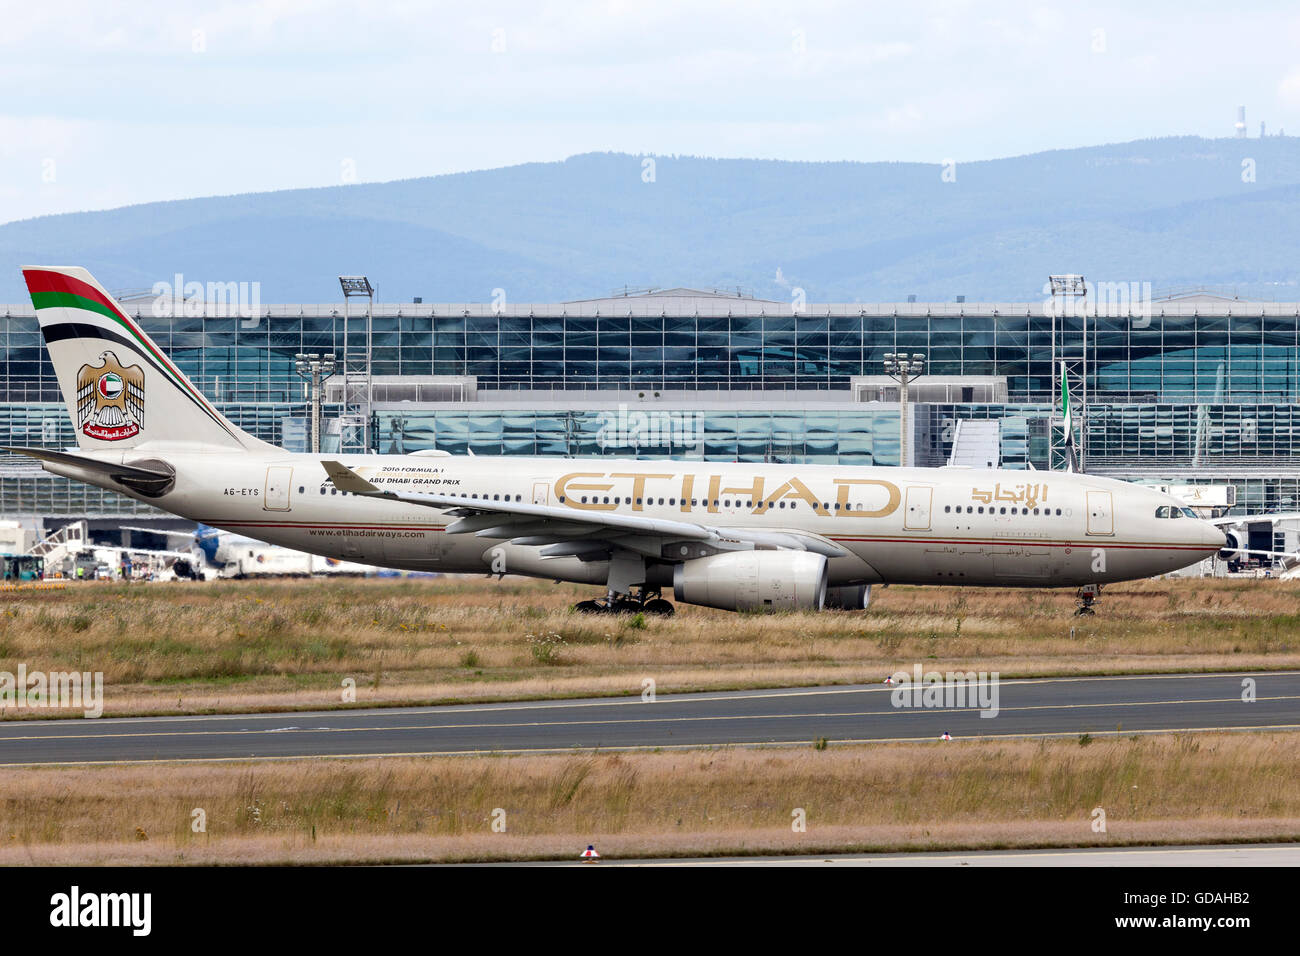 Etihad Airway Airbus A330 in Frankfurt Main - Stock Image